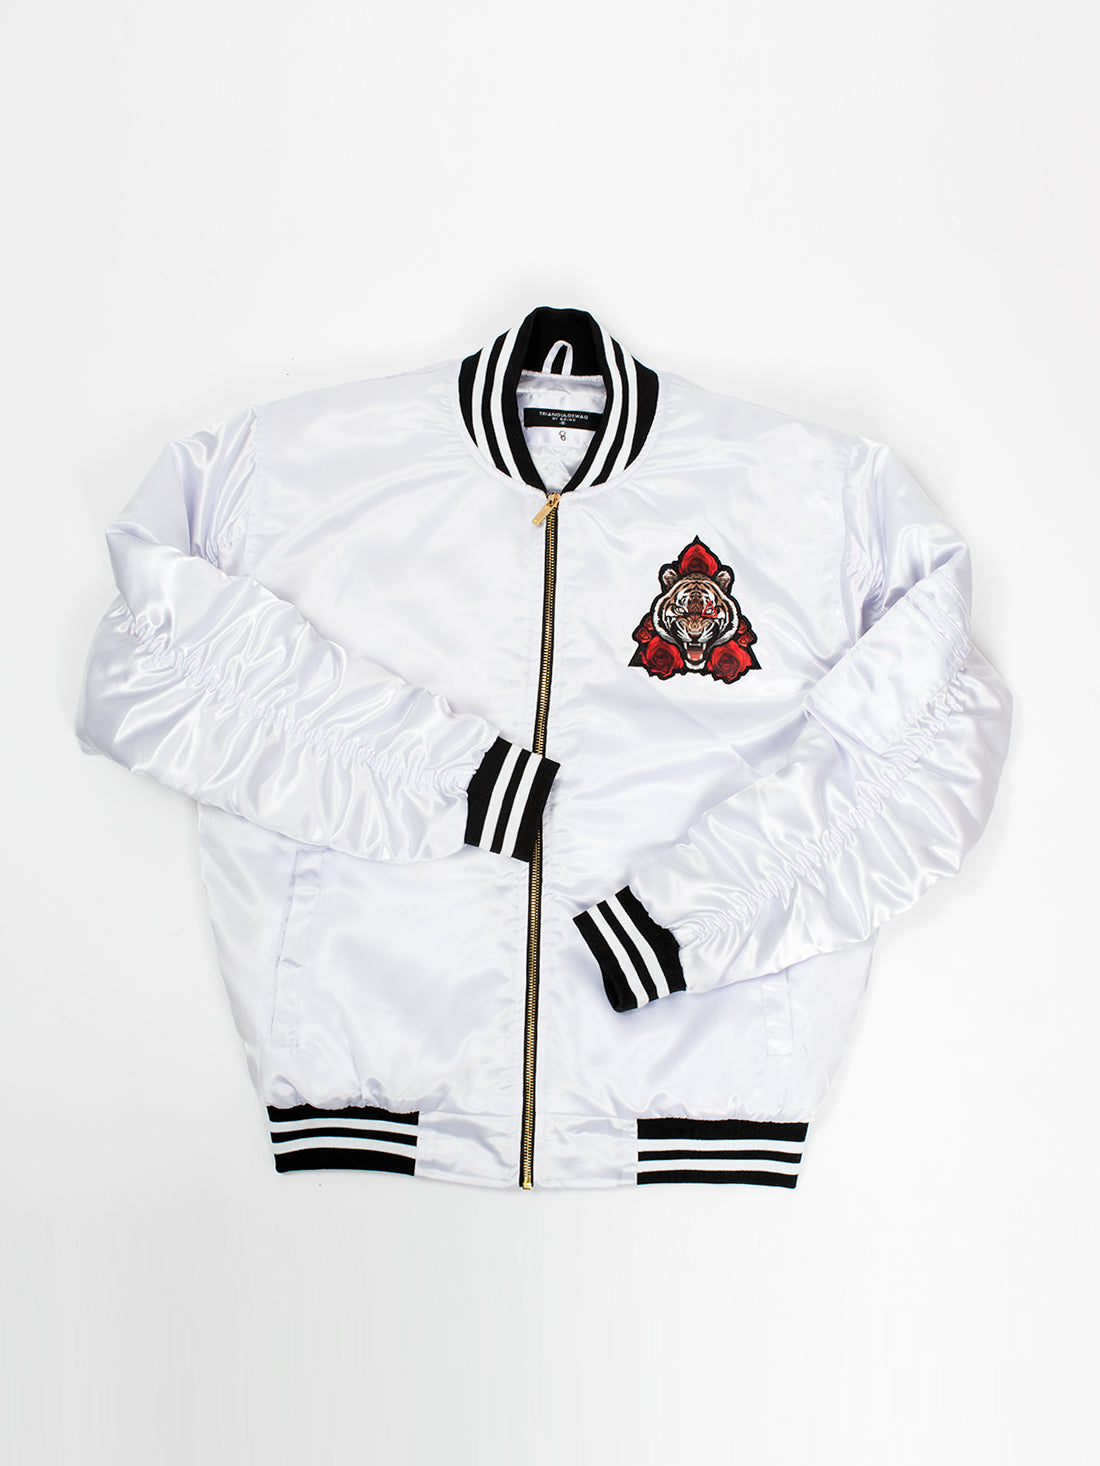 Le Tiger White Satin Jacket